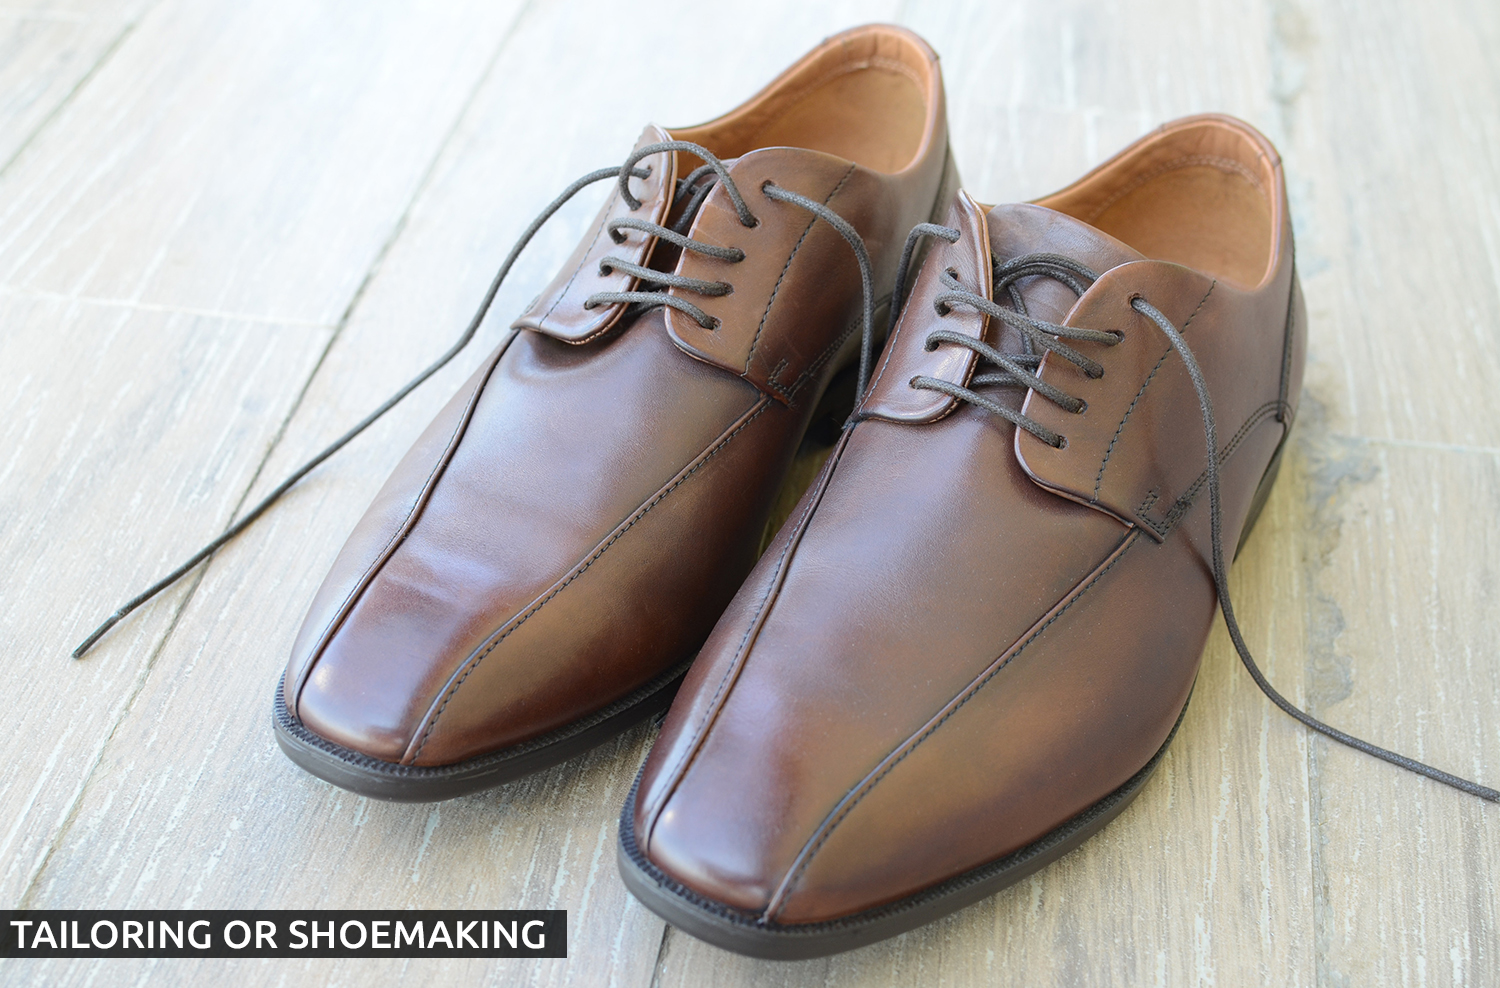 tailoring or shoemaking